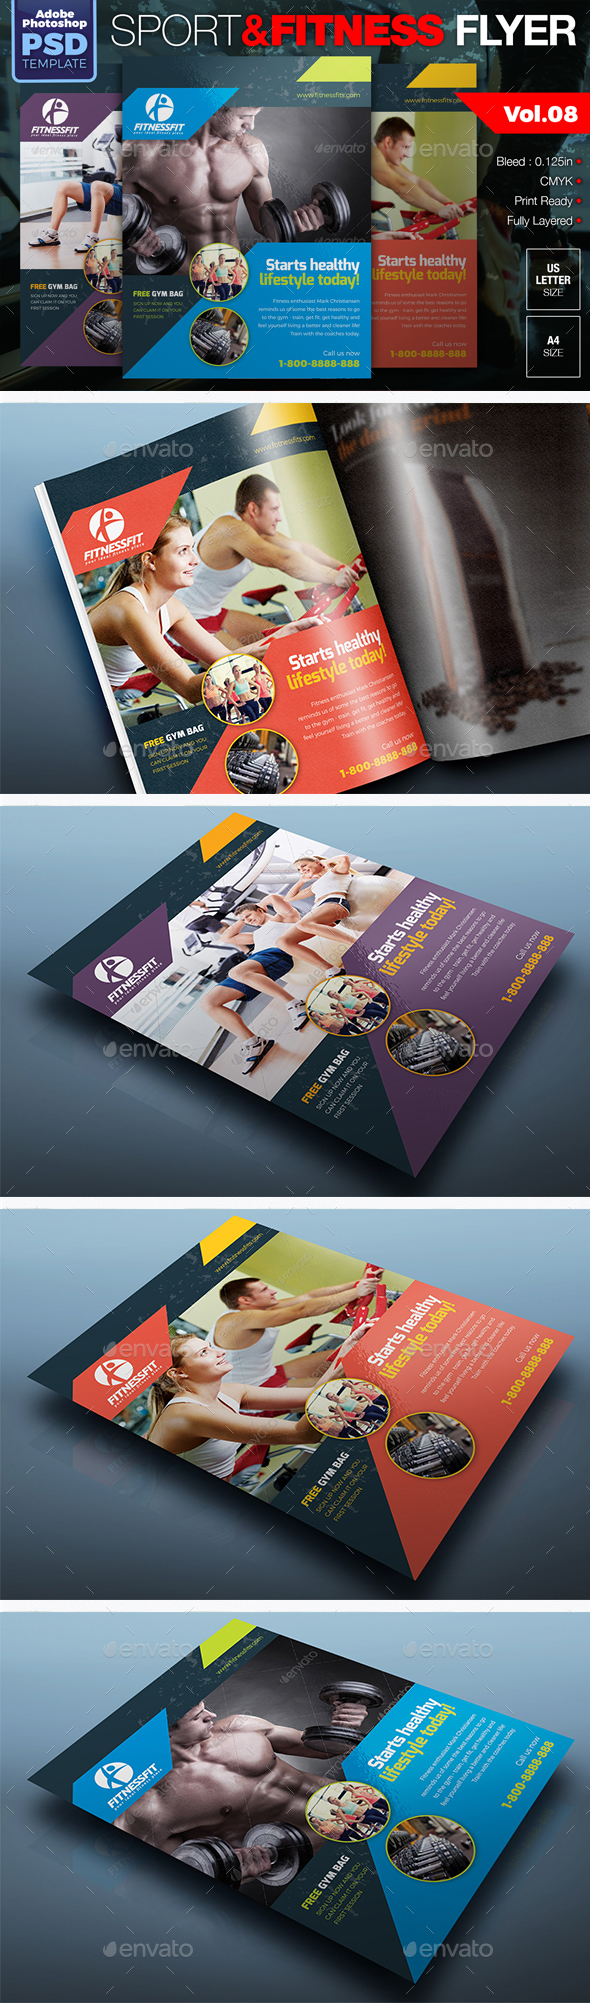 Sport & Fitness Flyer Vol.08 - Sports Events